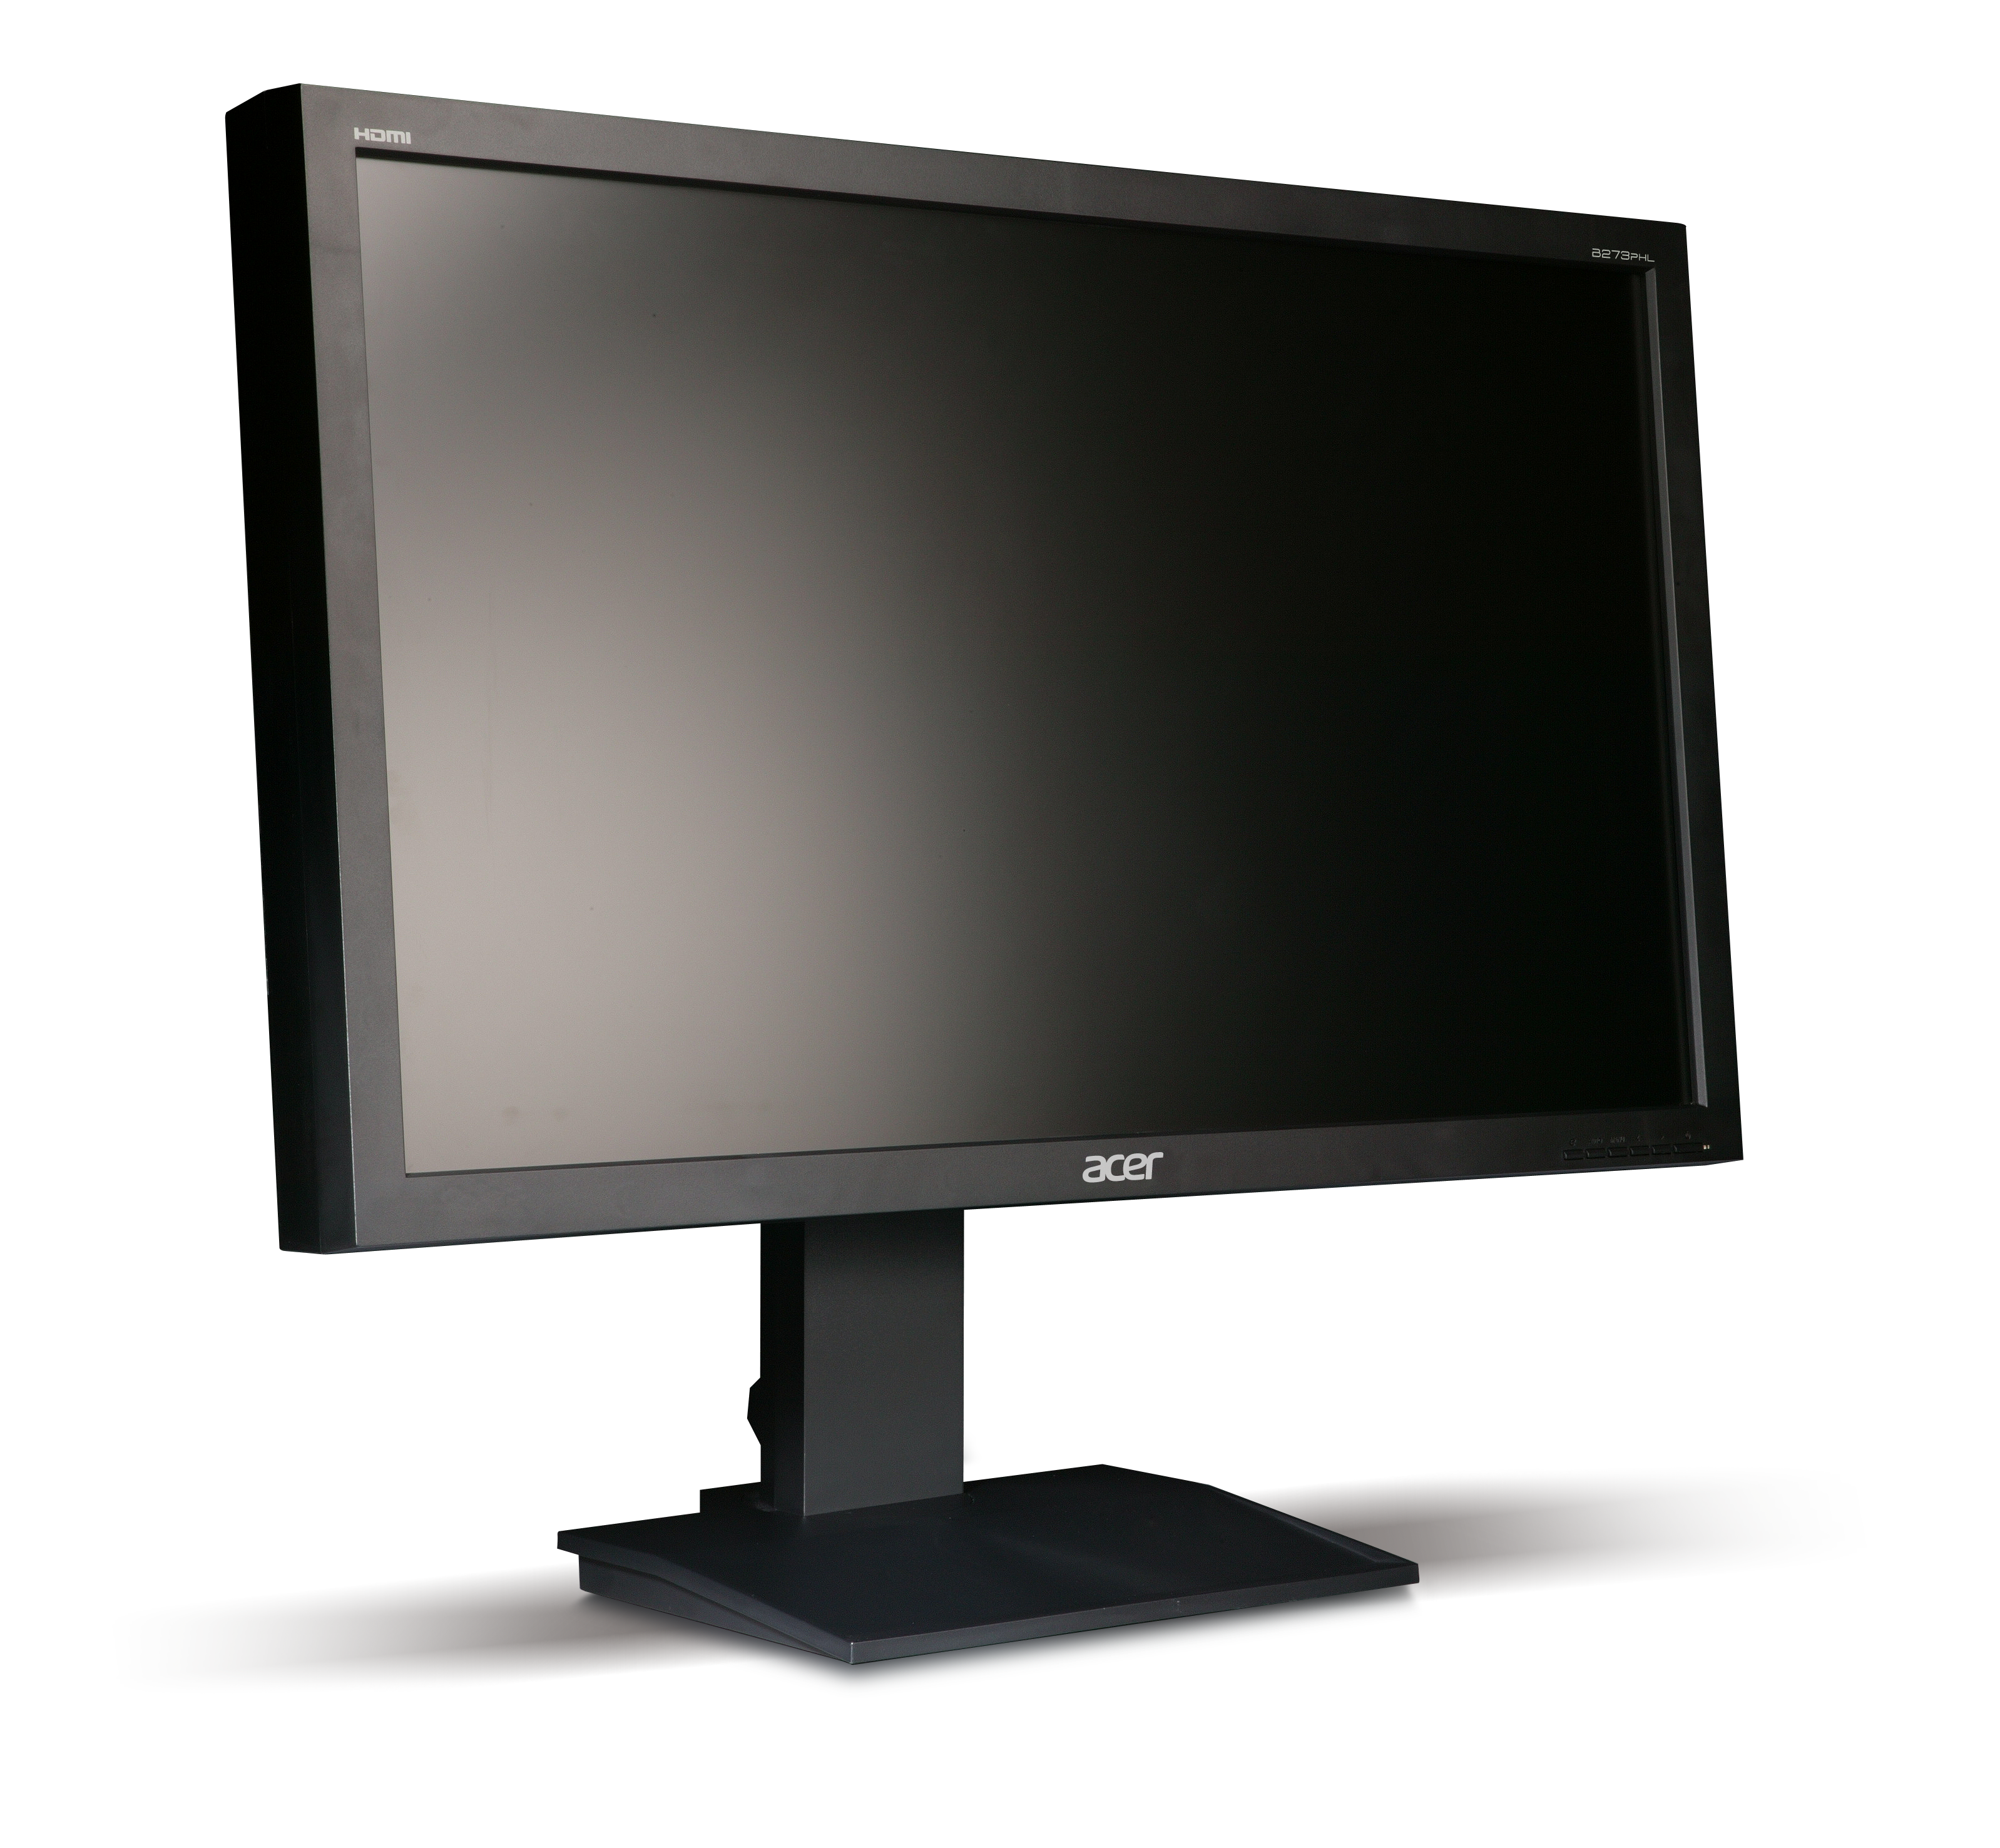 Old computer monitor png. Monitors images image lcd